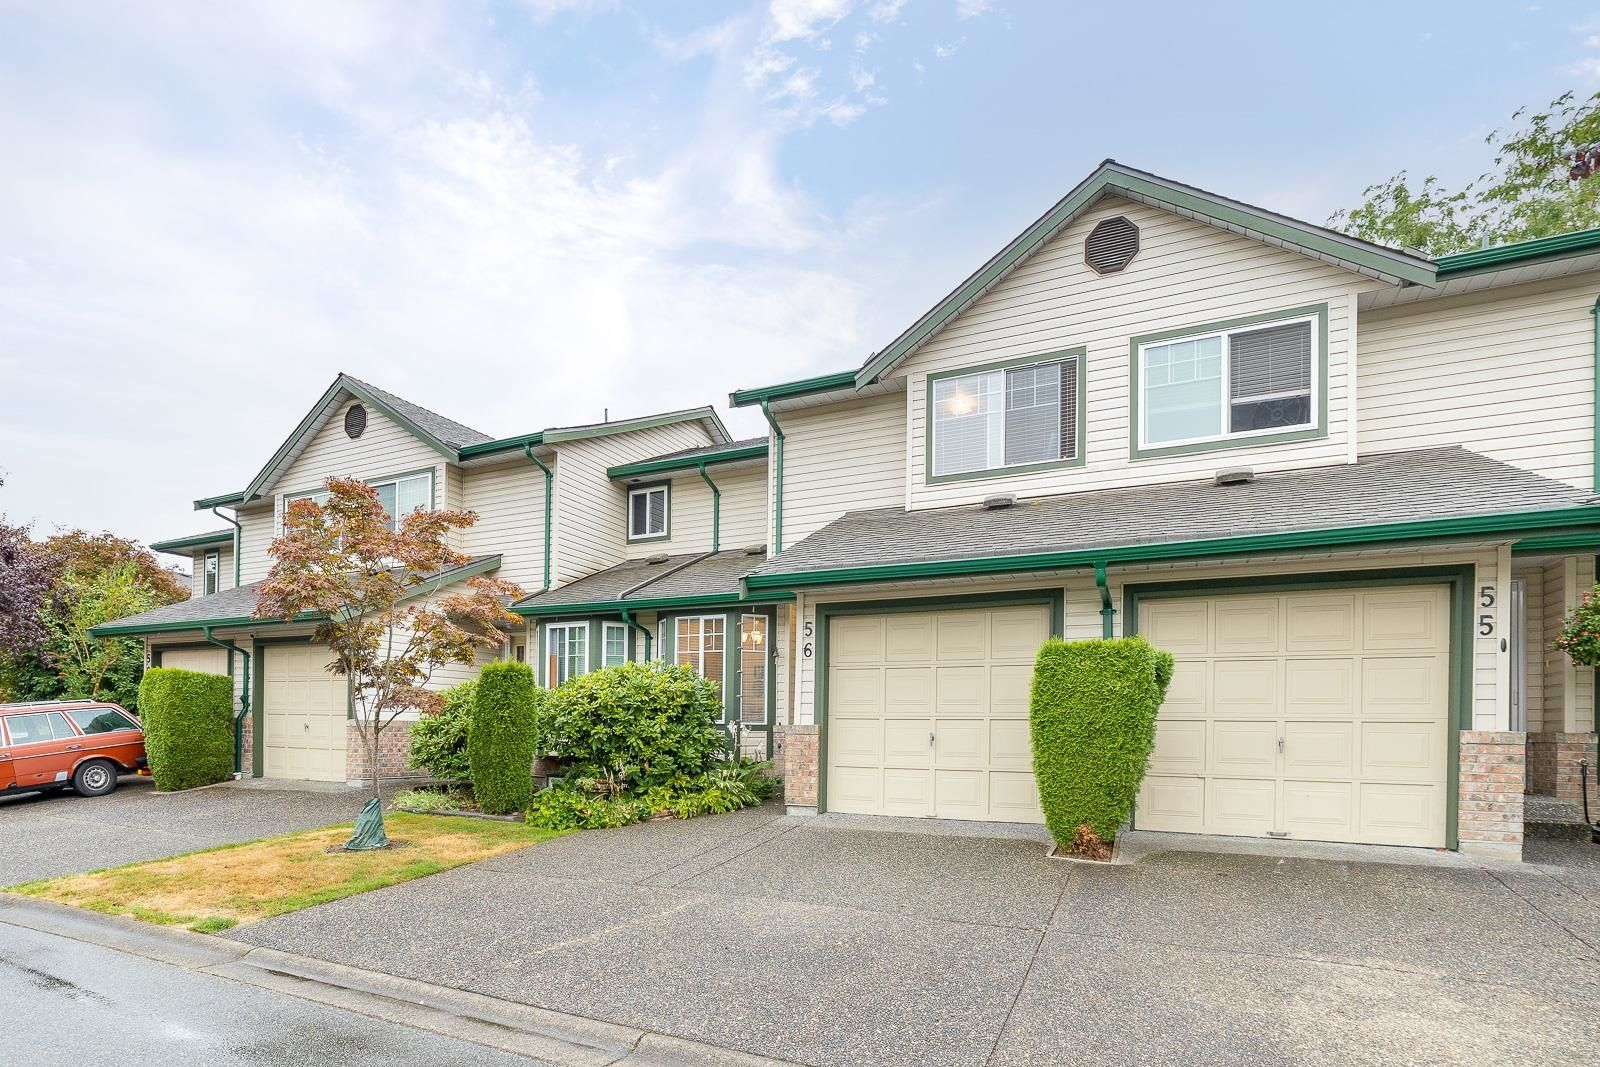 """Main Photo: 56 8863 216 Street in Langley: Walnut Grove Townhouse for sale in """"EMERALD ESTATES"""" : MLS®# R2617120"""